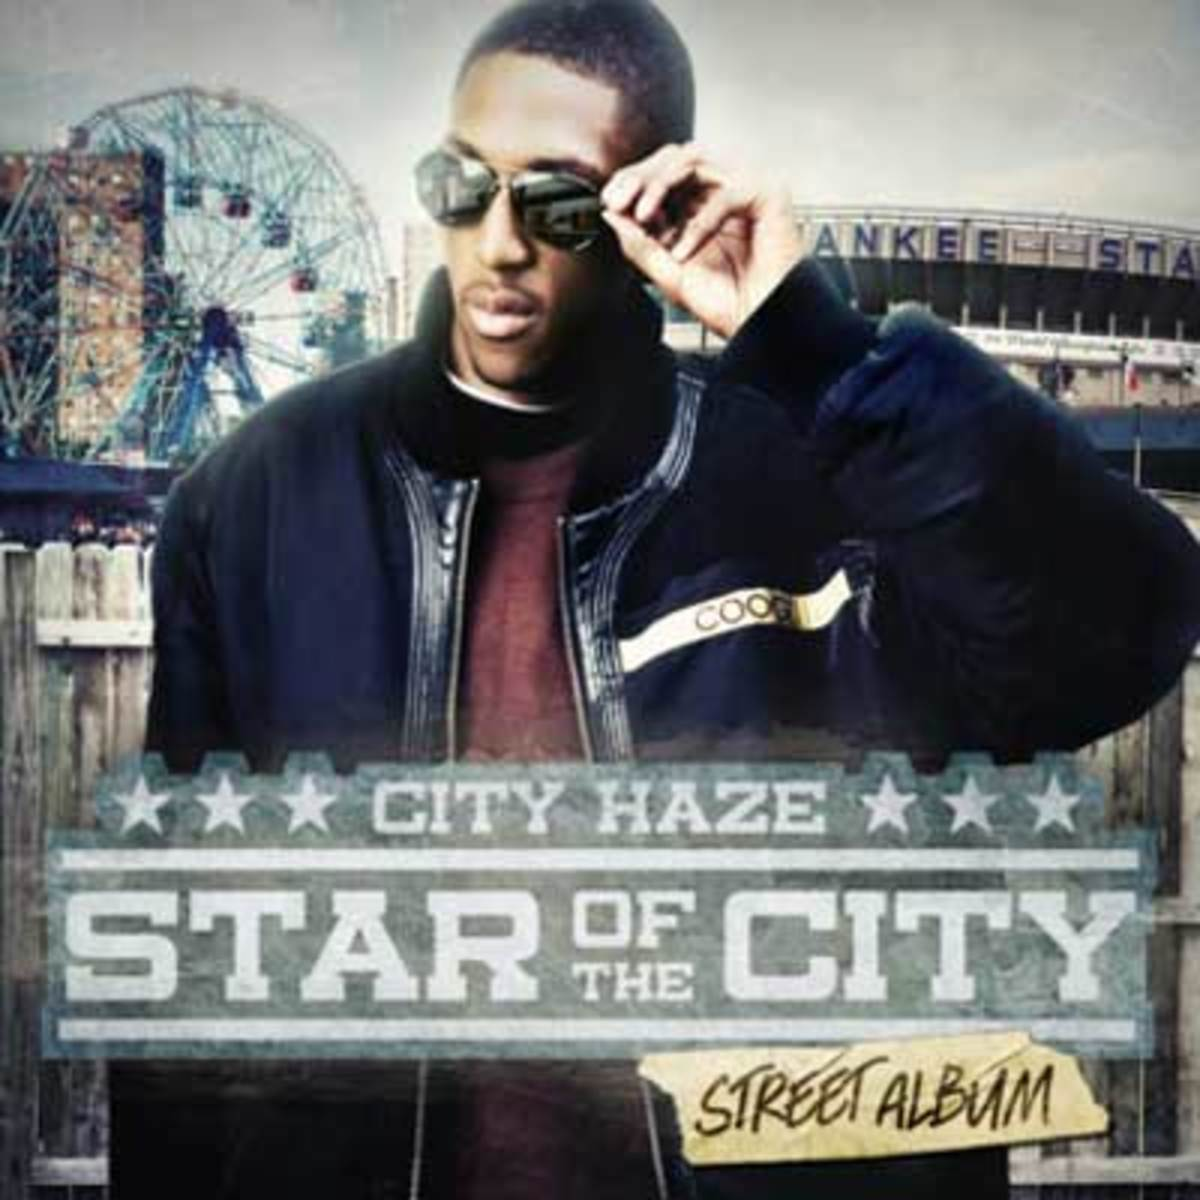 city-haze-star-of-the-city.jpg